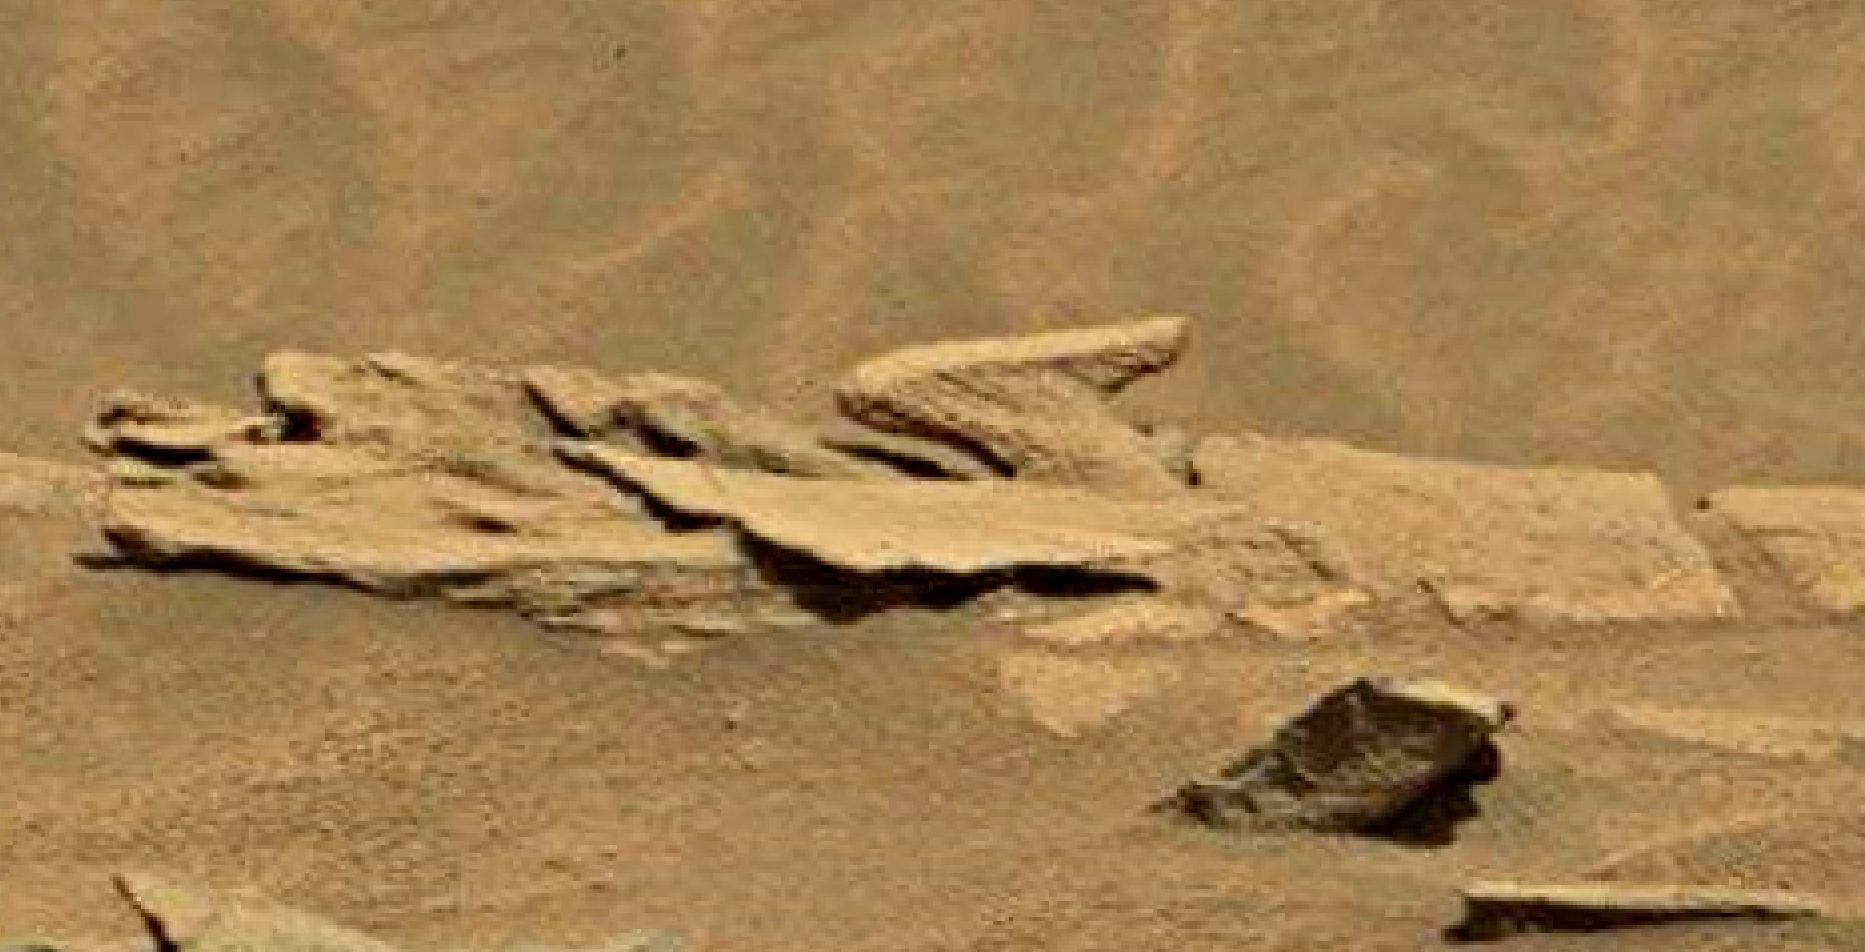 12 Bizarre Discoveries on Mars from Mars Orbiter Mars-sol-1346-anomaly-artifacts-4-was-life-on-mars